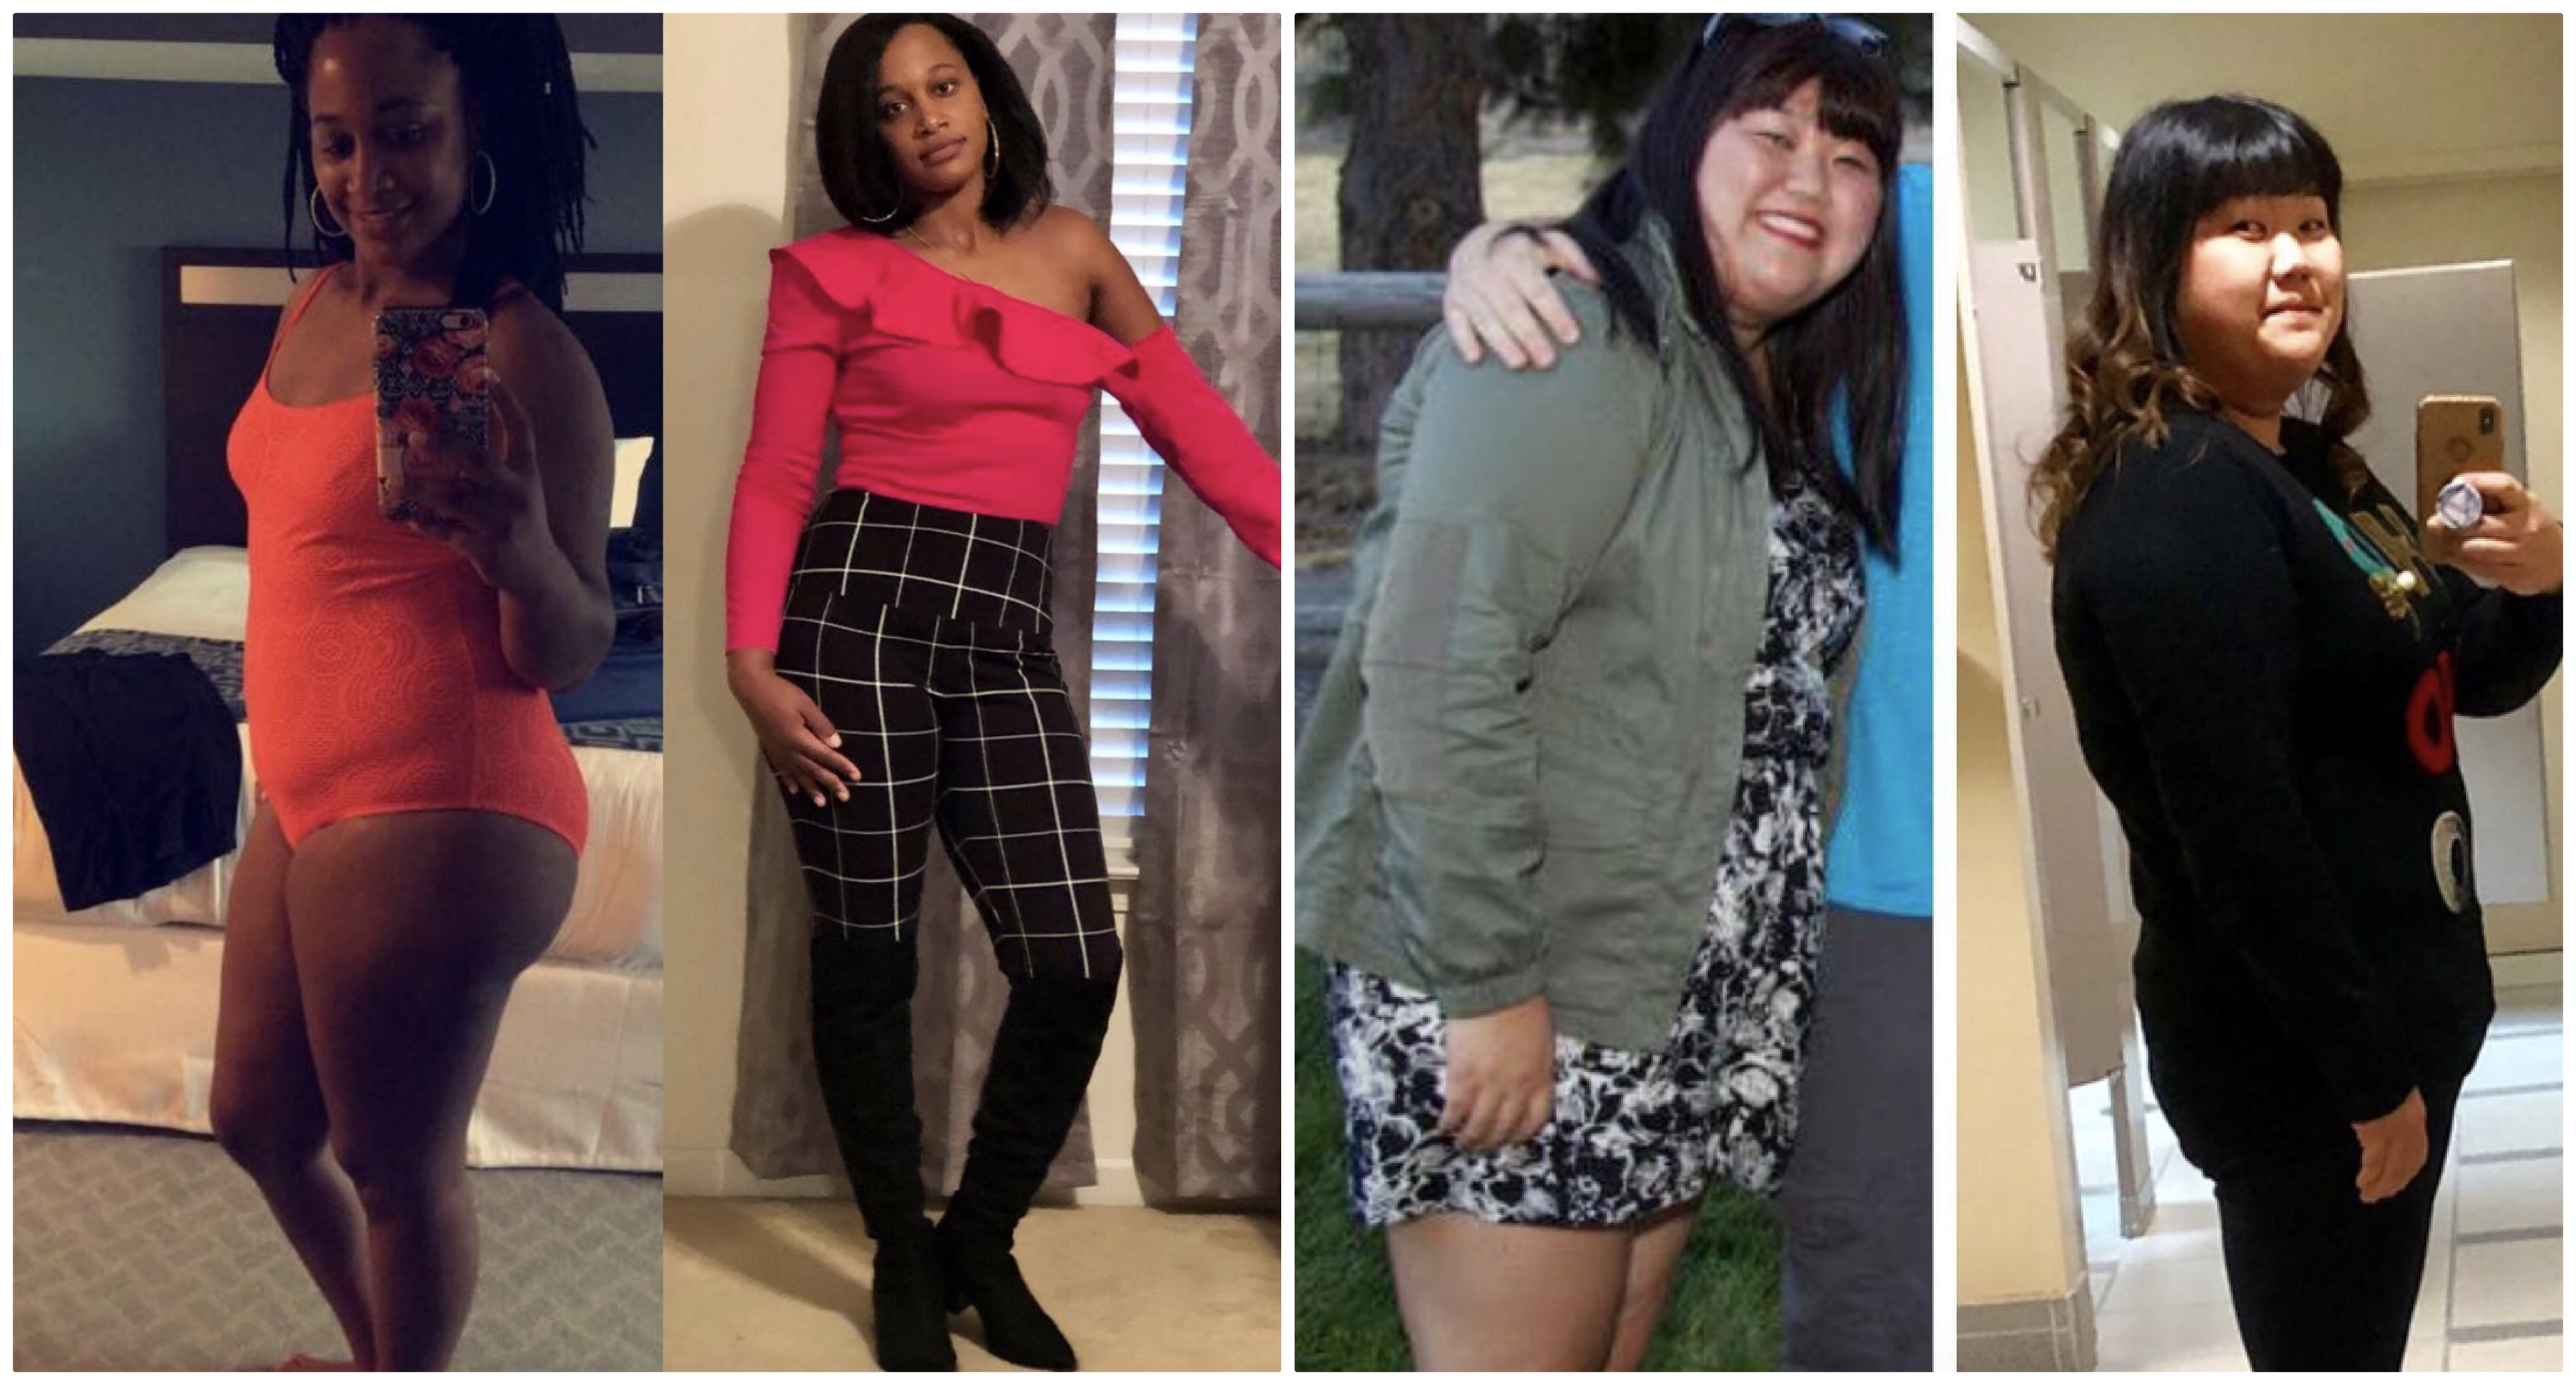 16 Women Who Tried Keto Diet Tell Us What It S Really Like